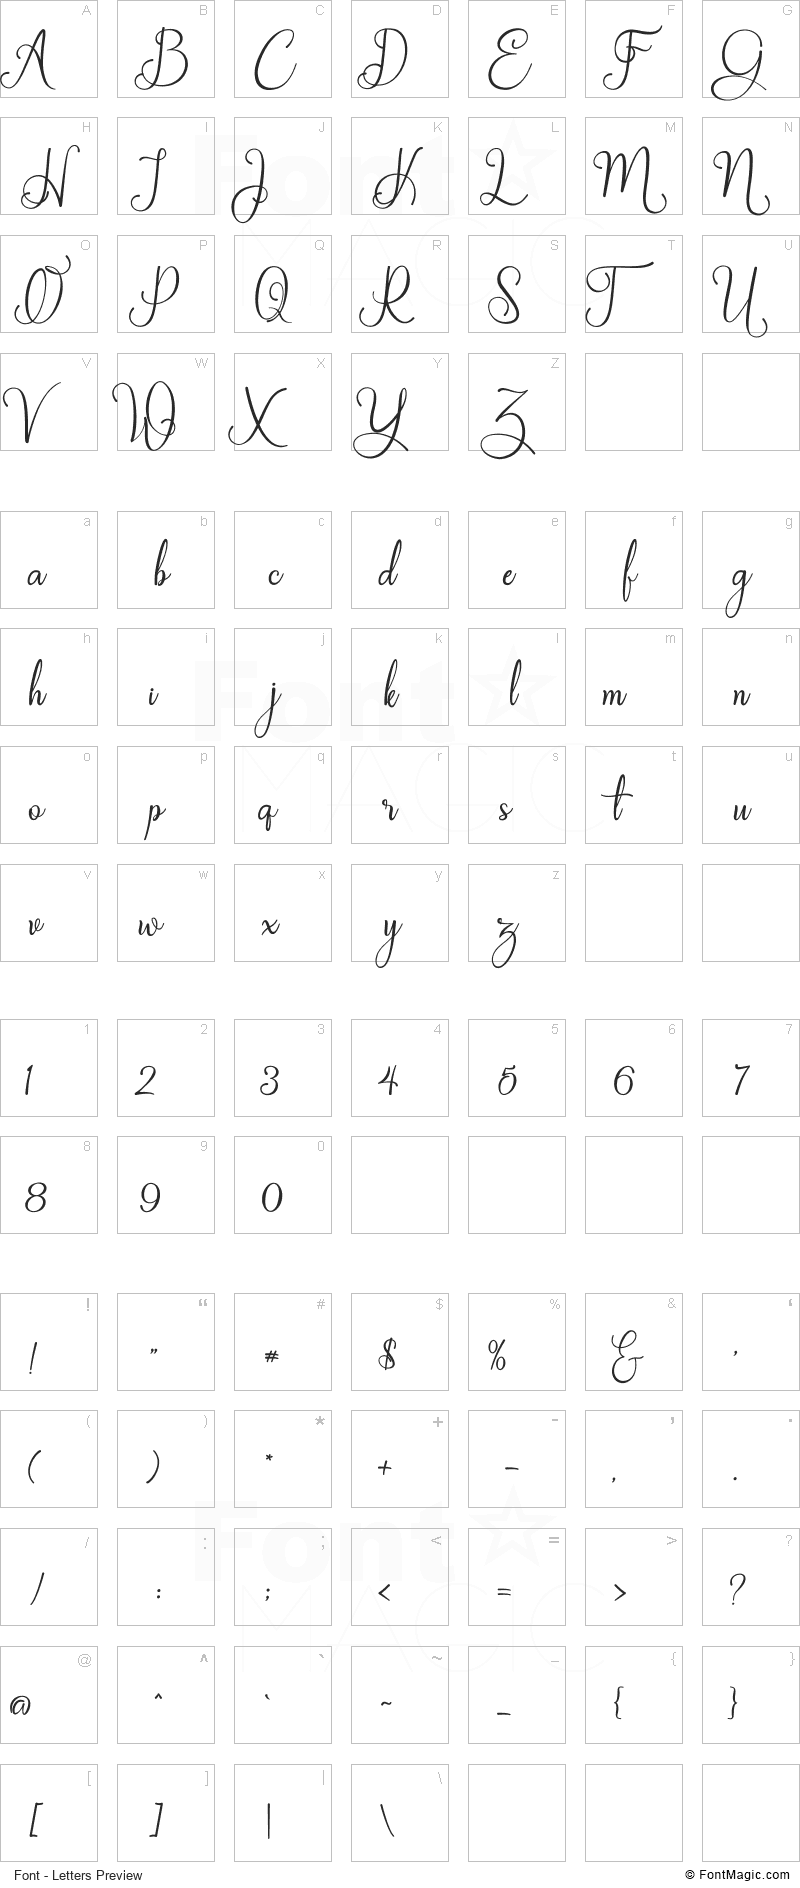 Galinah Font - All Latters Preview Chart